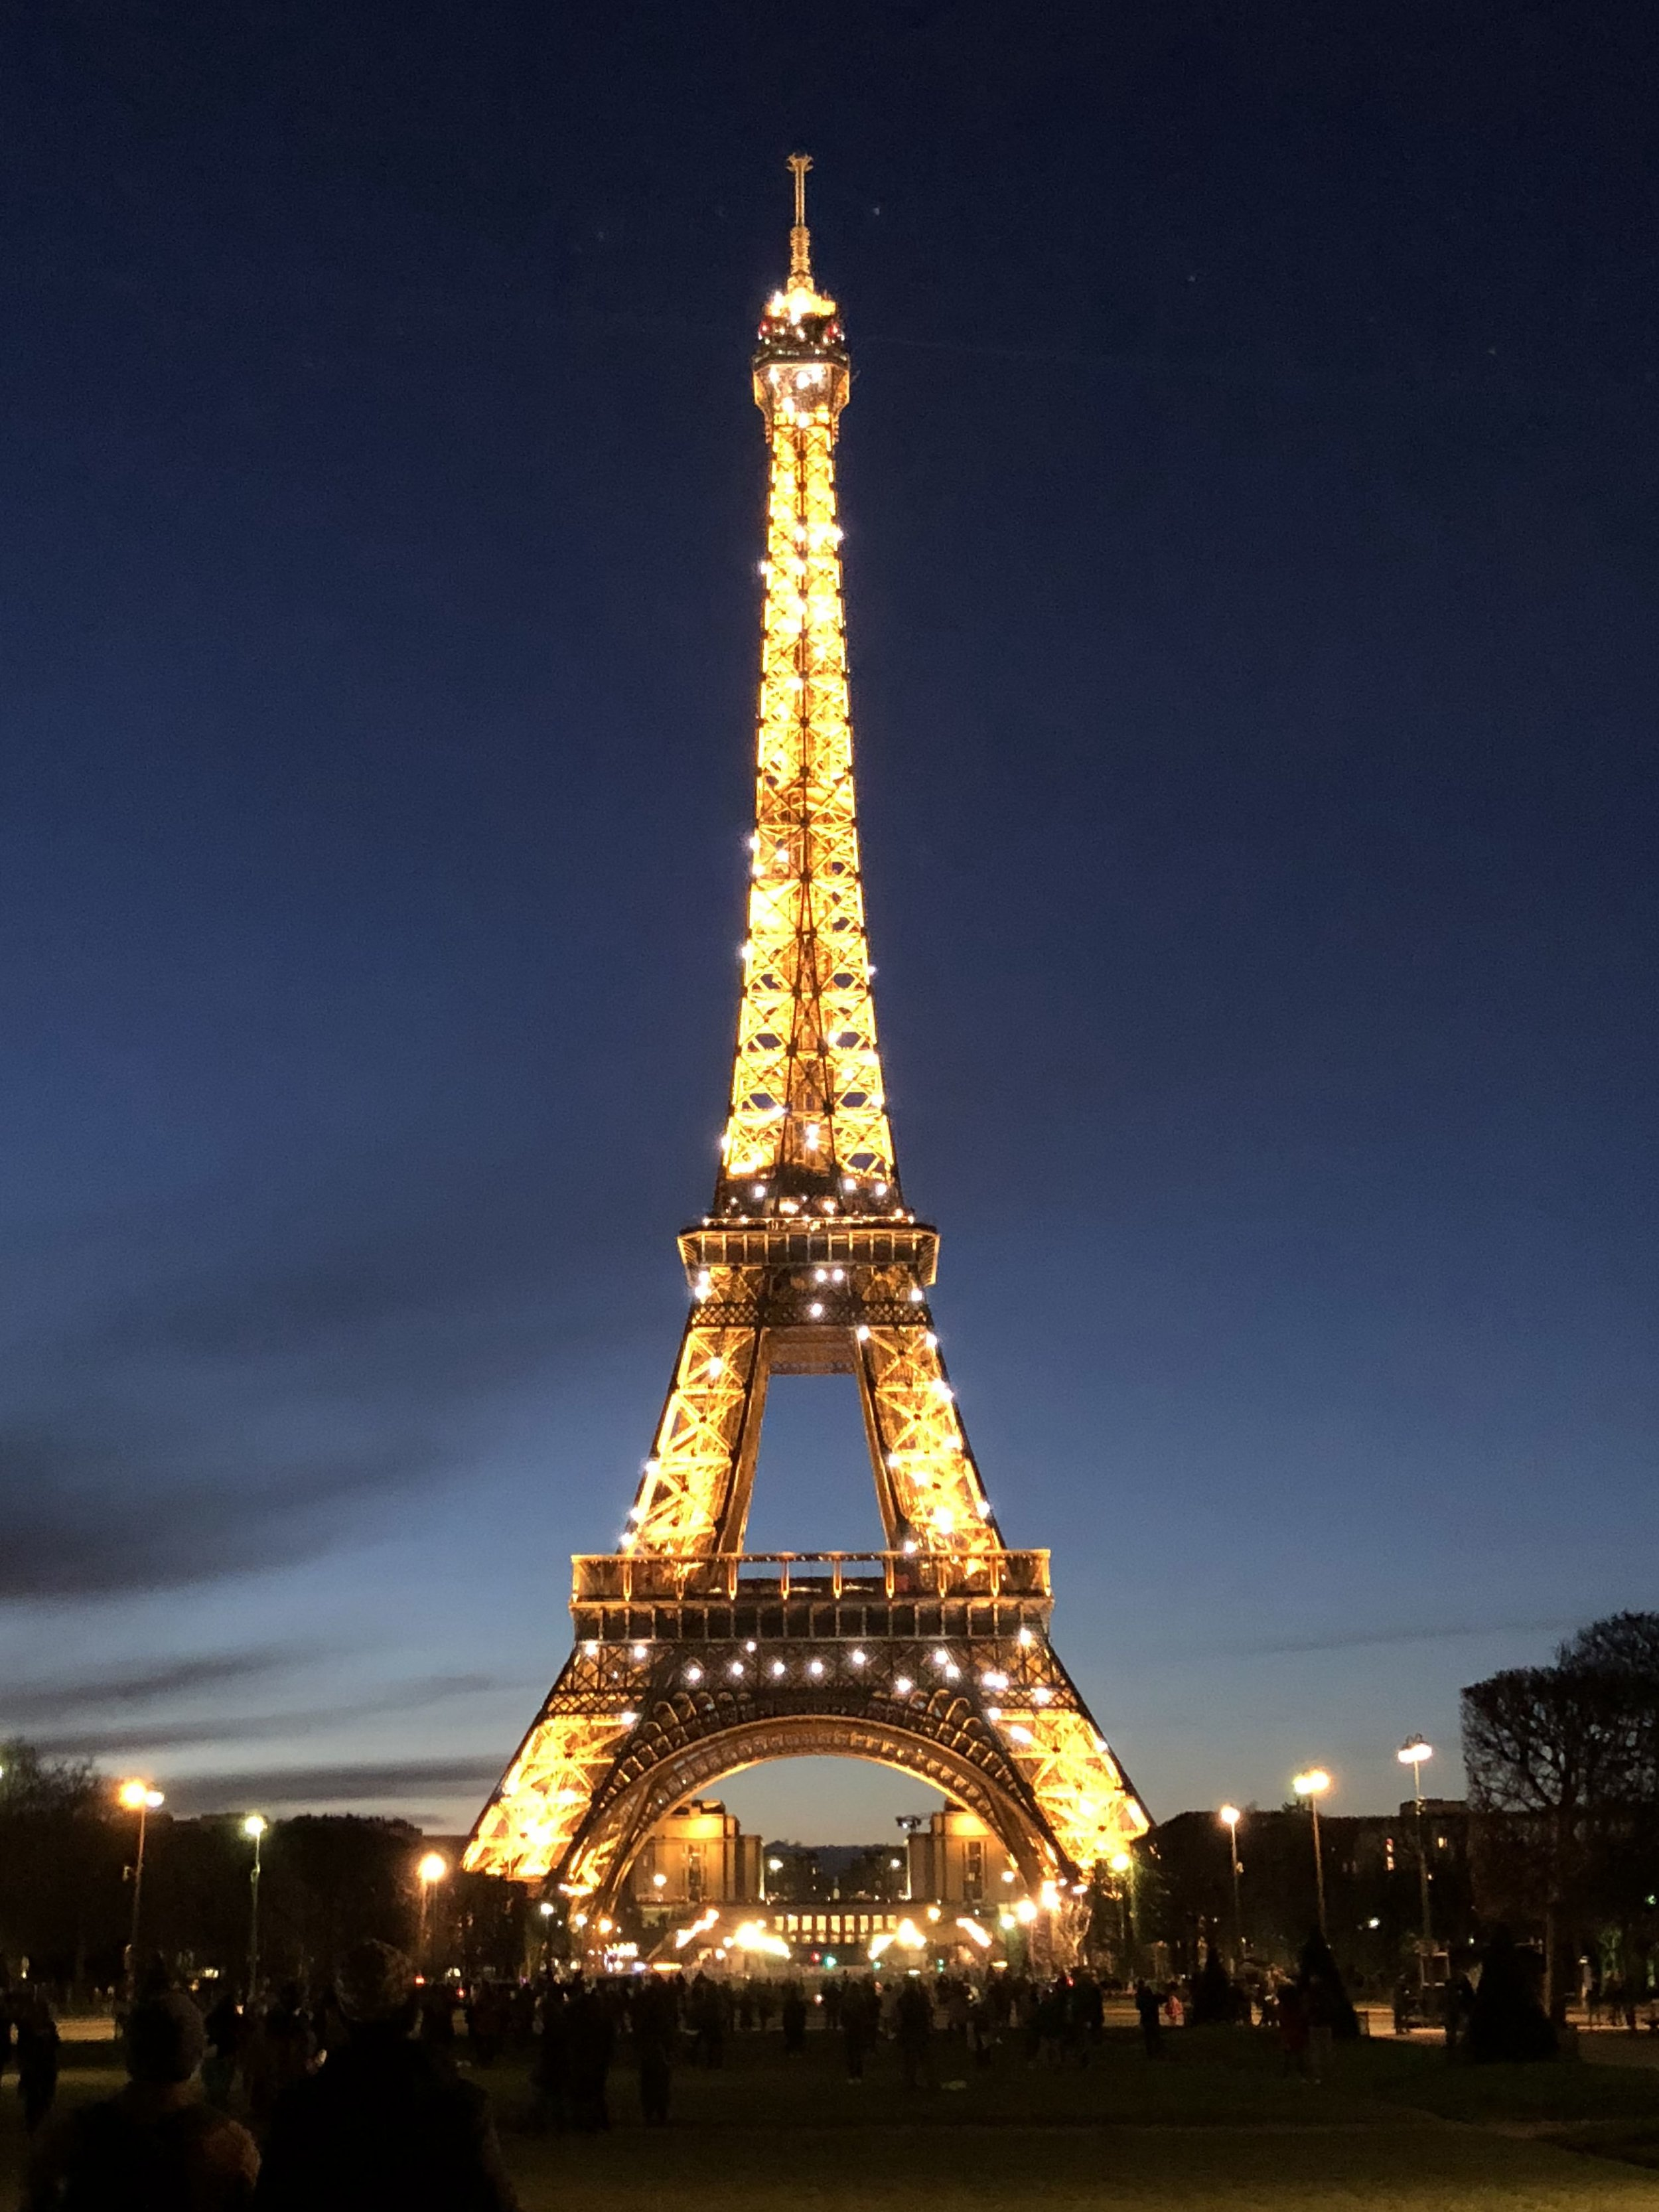 Sparkling lights of the eiffel Tower in Paris, France